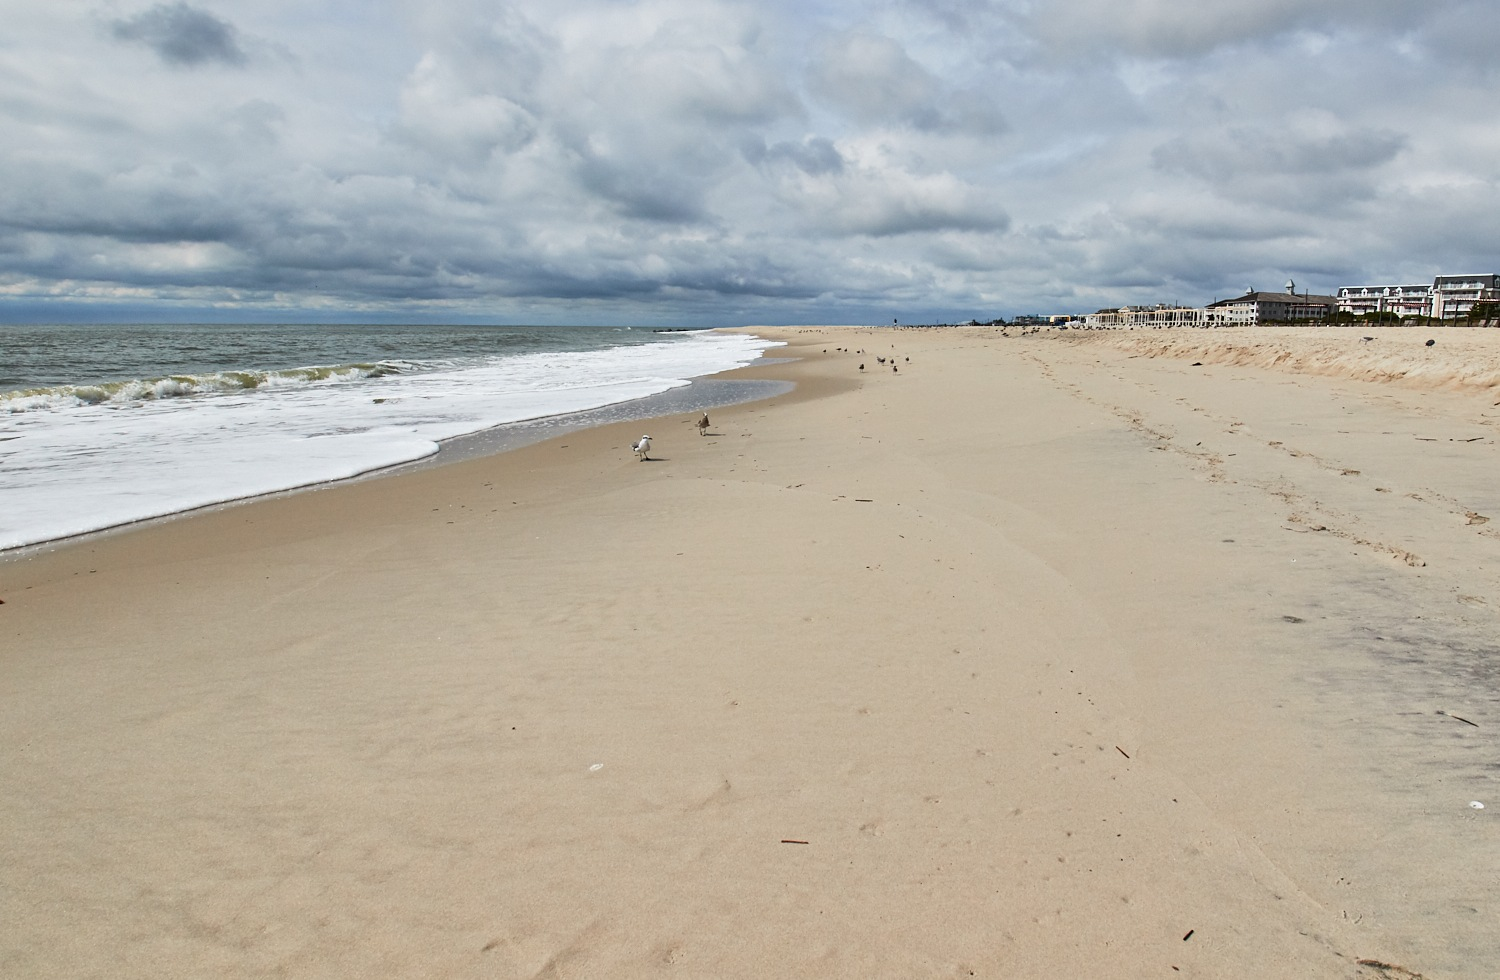 We Have The Beach To Ourselves by Holly Jennings